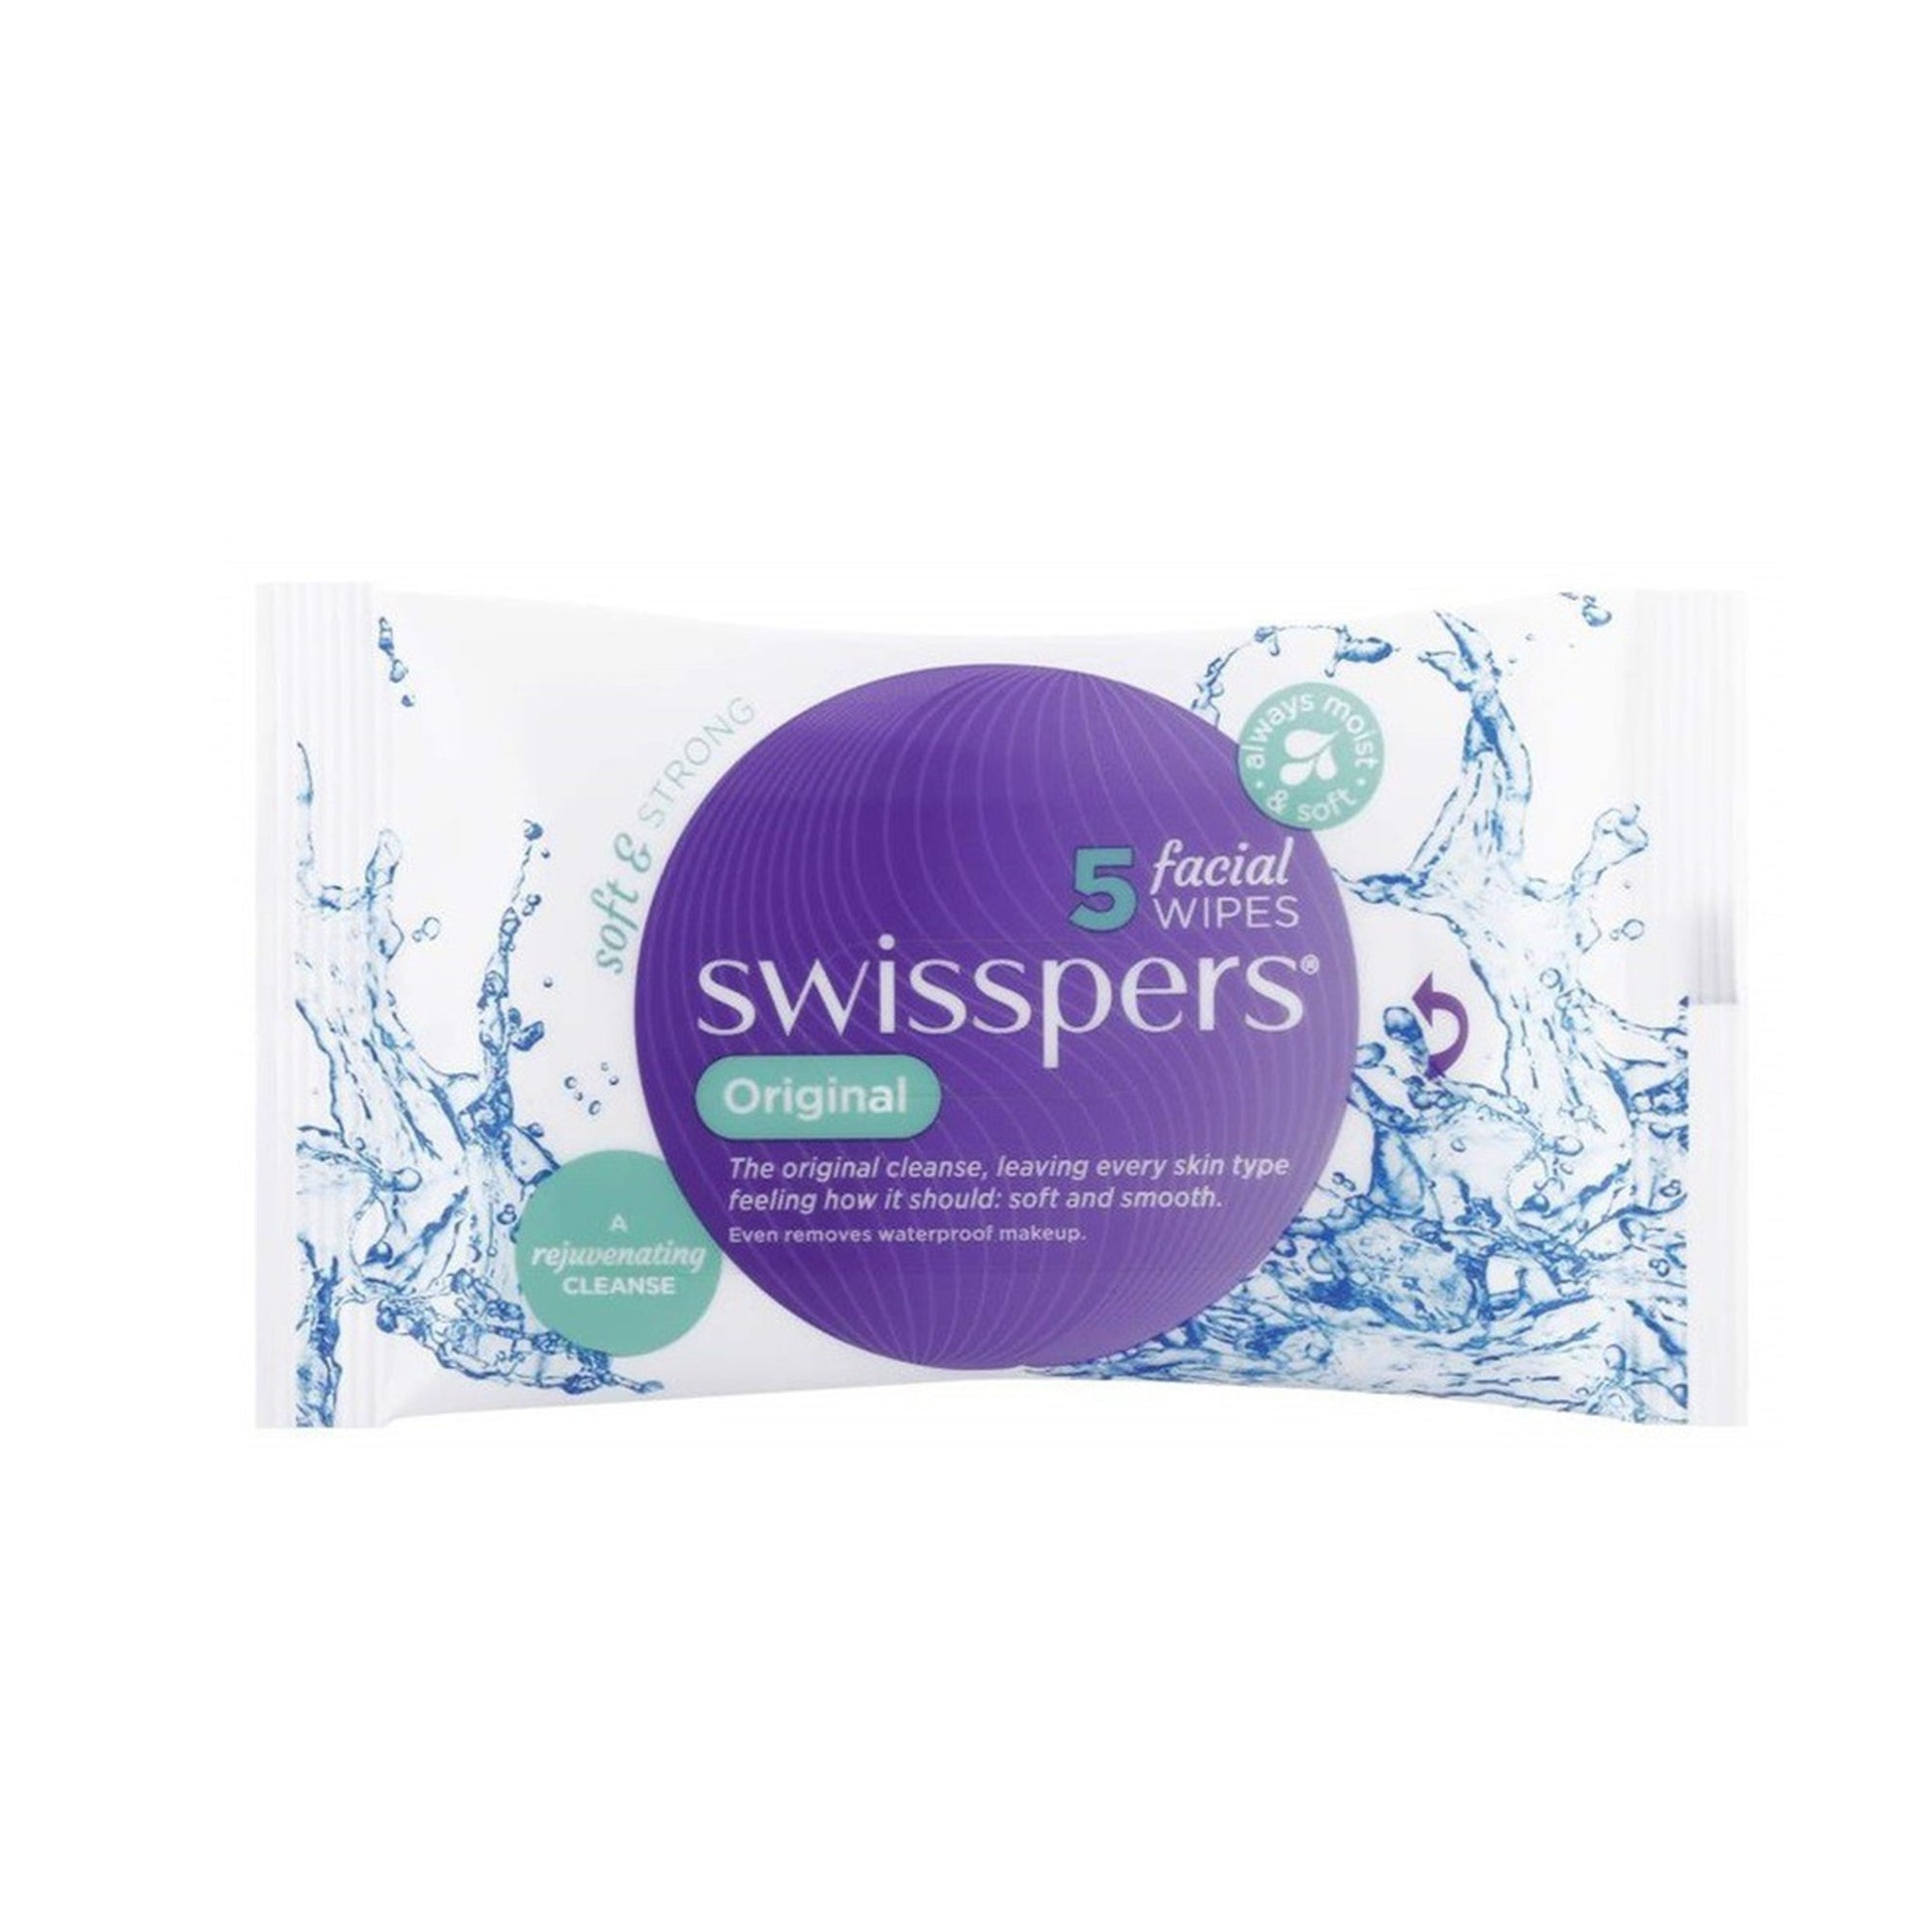 Swisspers Face Wipes Original 5Pk